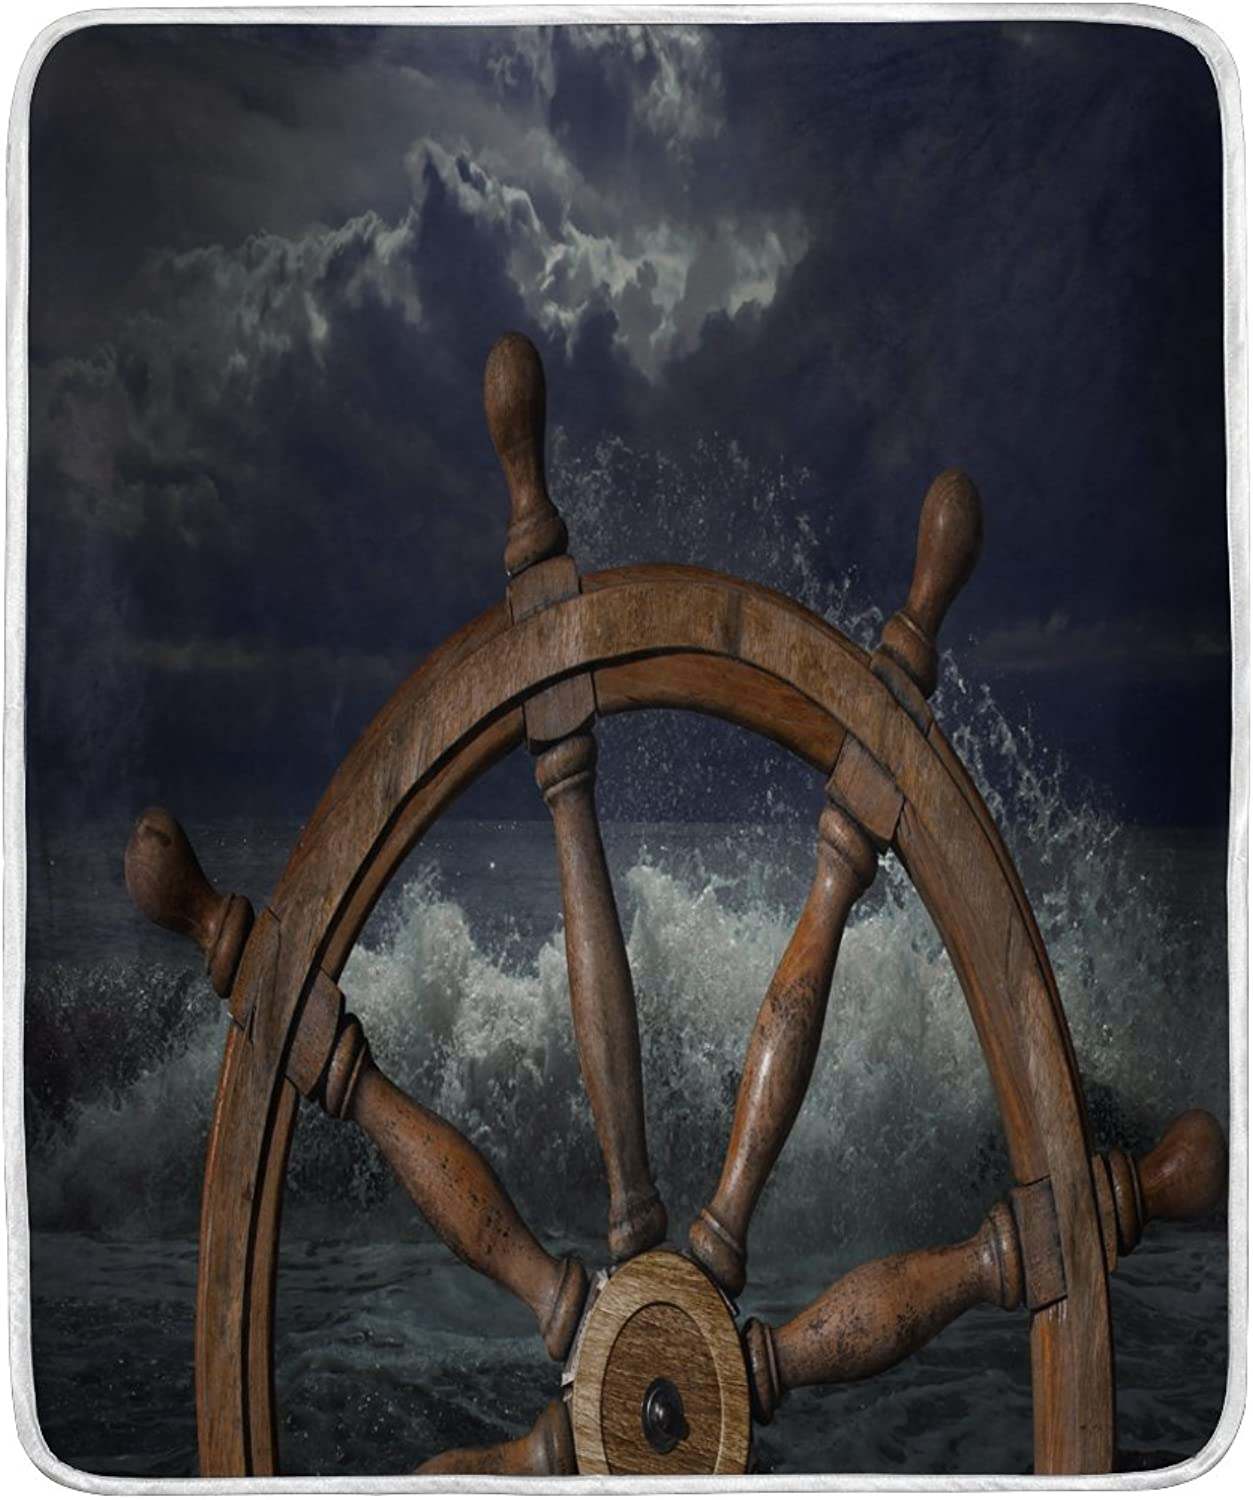 ALAZA Home Decor Tropical Ocean Sea Ship Wheel Blanket Soft Warm Blankets for Bed Couch Sofa Lightweight Travelling Camping 60 x 50 inch Throw Size for Kids Boys Women